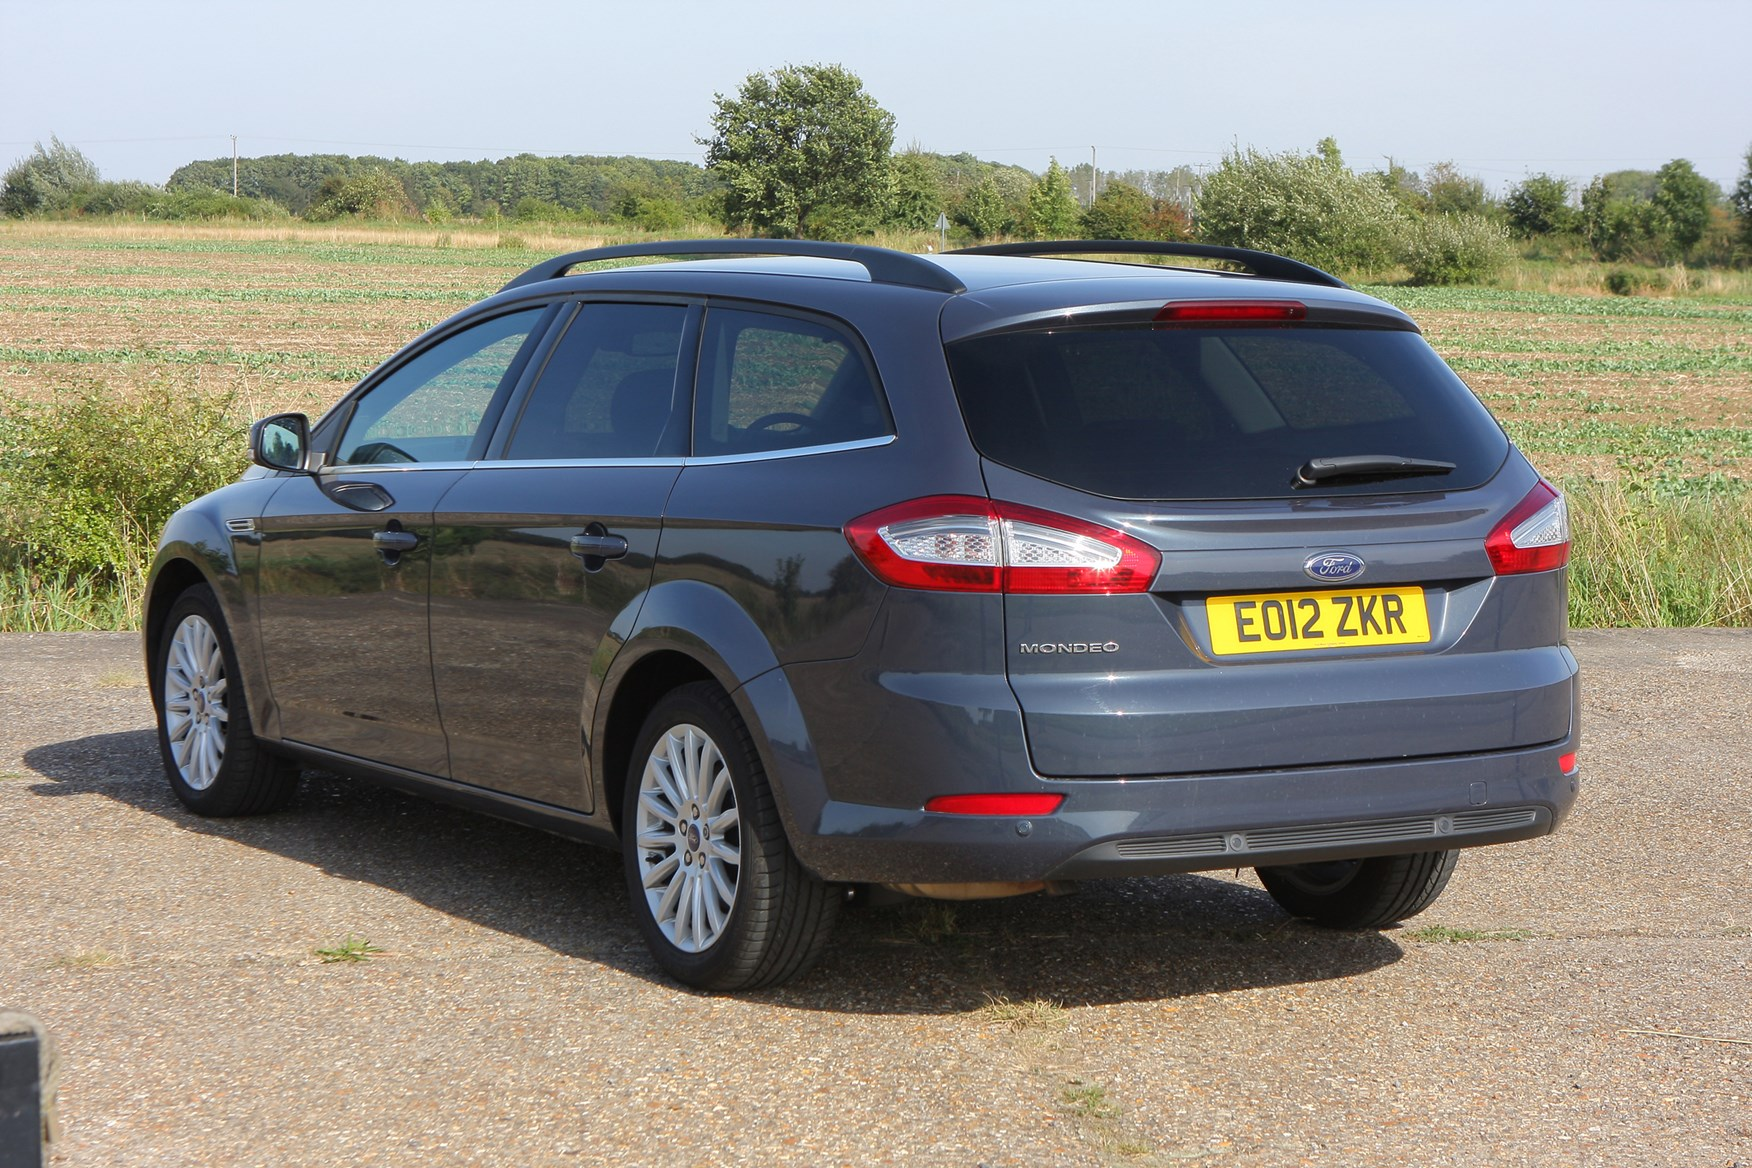 Used Ford Mondeo Estate (2007 - 2014) Review | Parkers